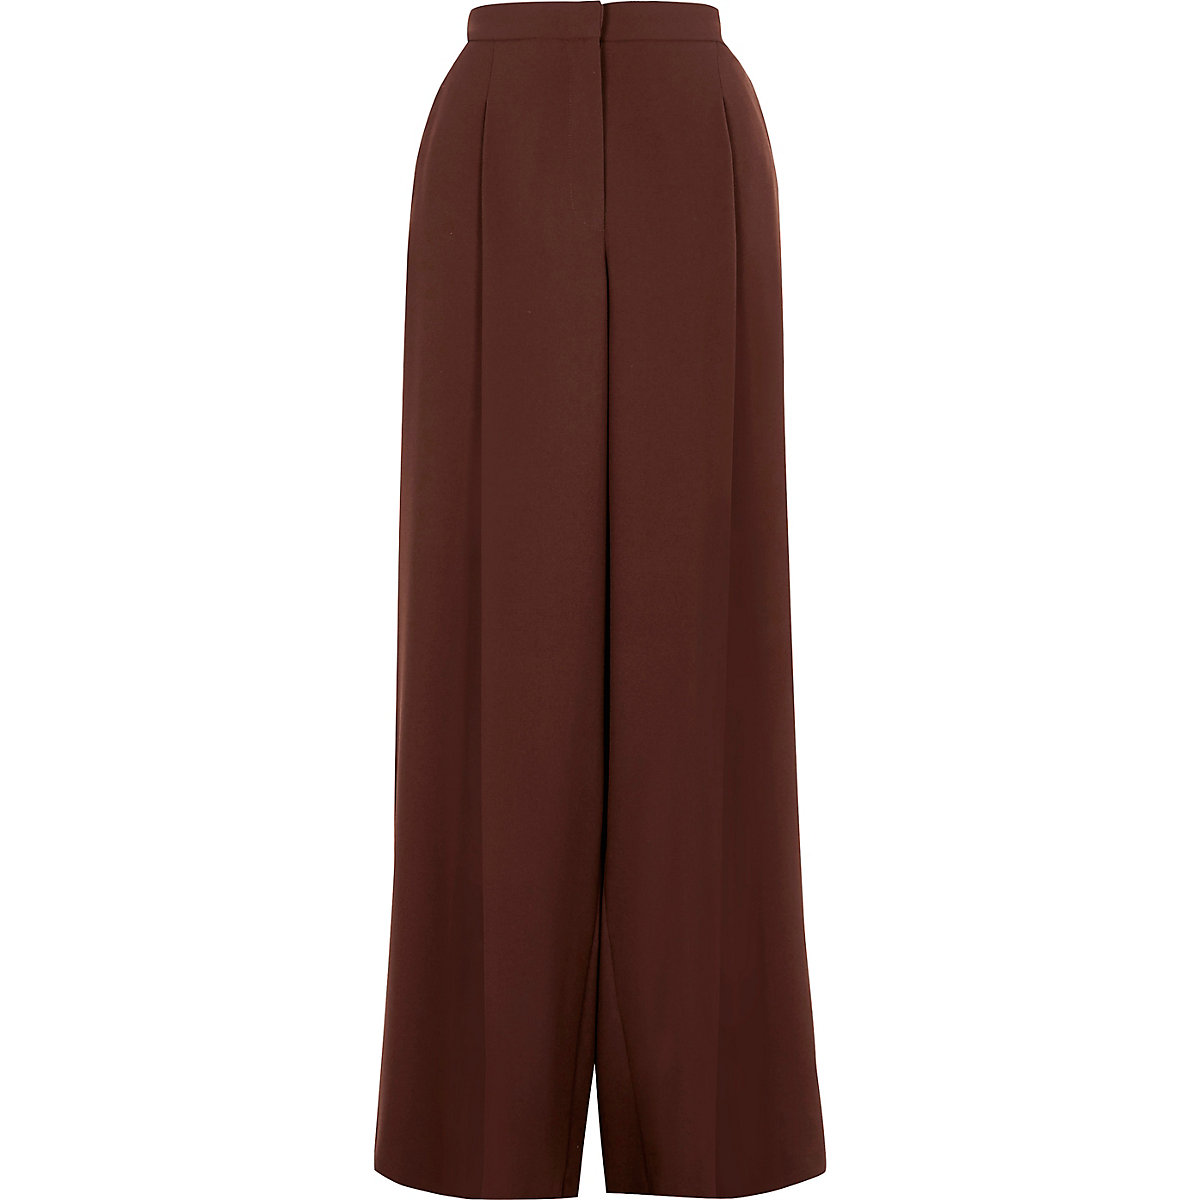 Brown wide leg trousers